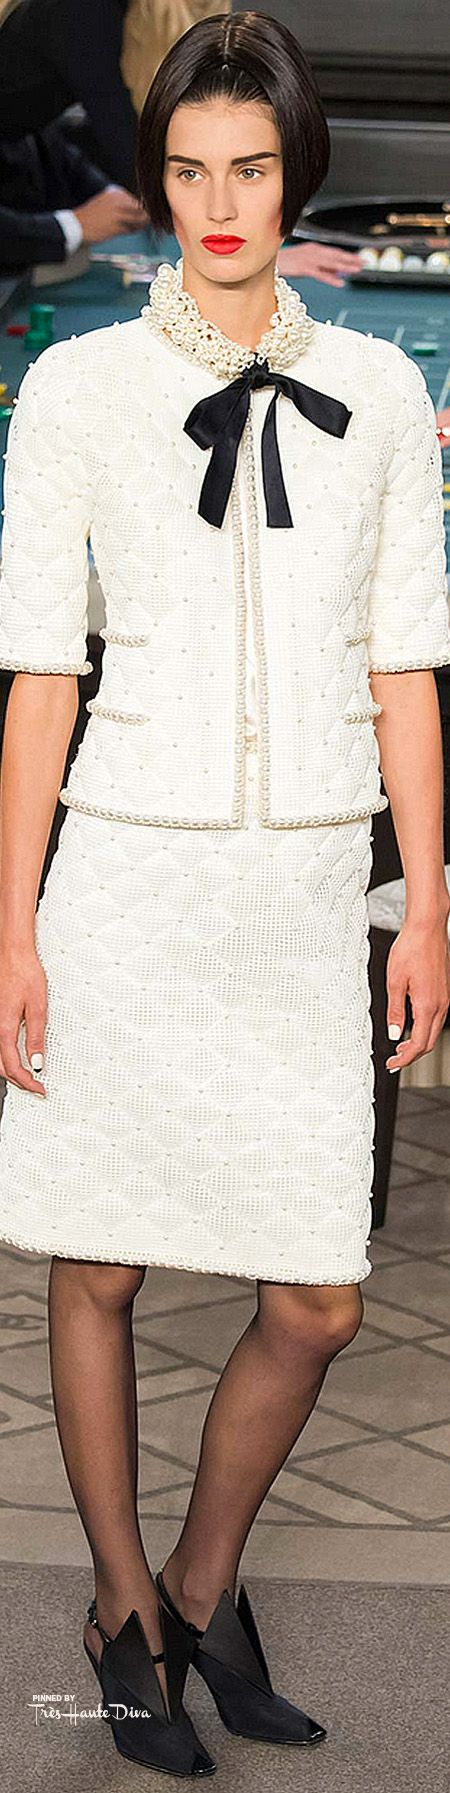 Chanel Haute Couture Fall 2015.. love This Look #Chanel